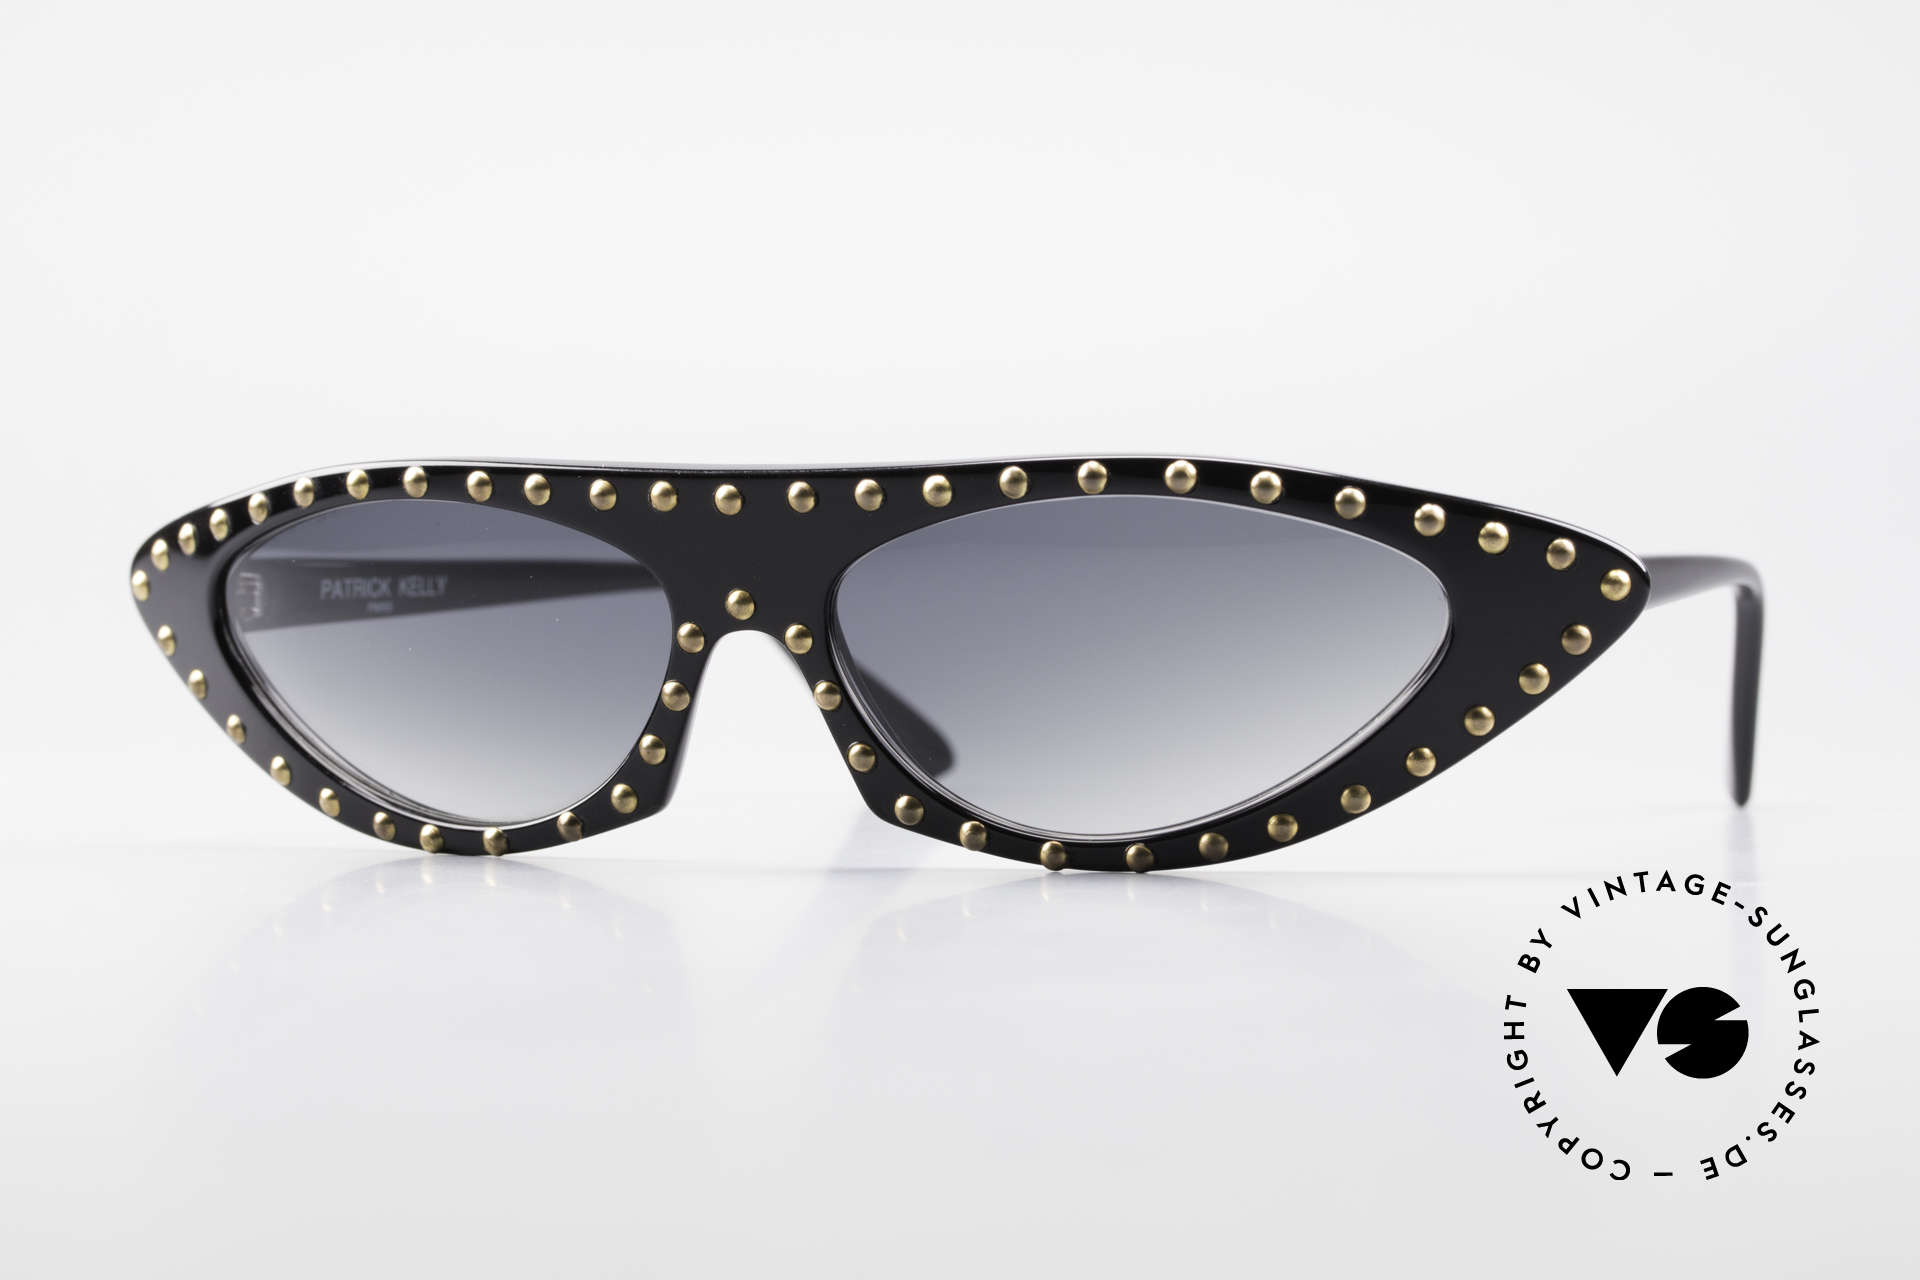 Patrick Kelly Pirate 22 80's Haute Couture Shades, rare Patrick Kelly Pirate 1980er designer sunglasses, Made for Women